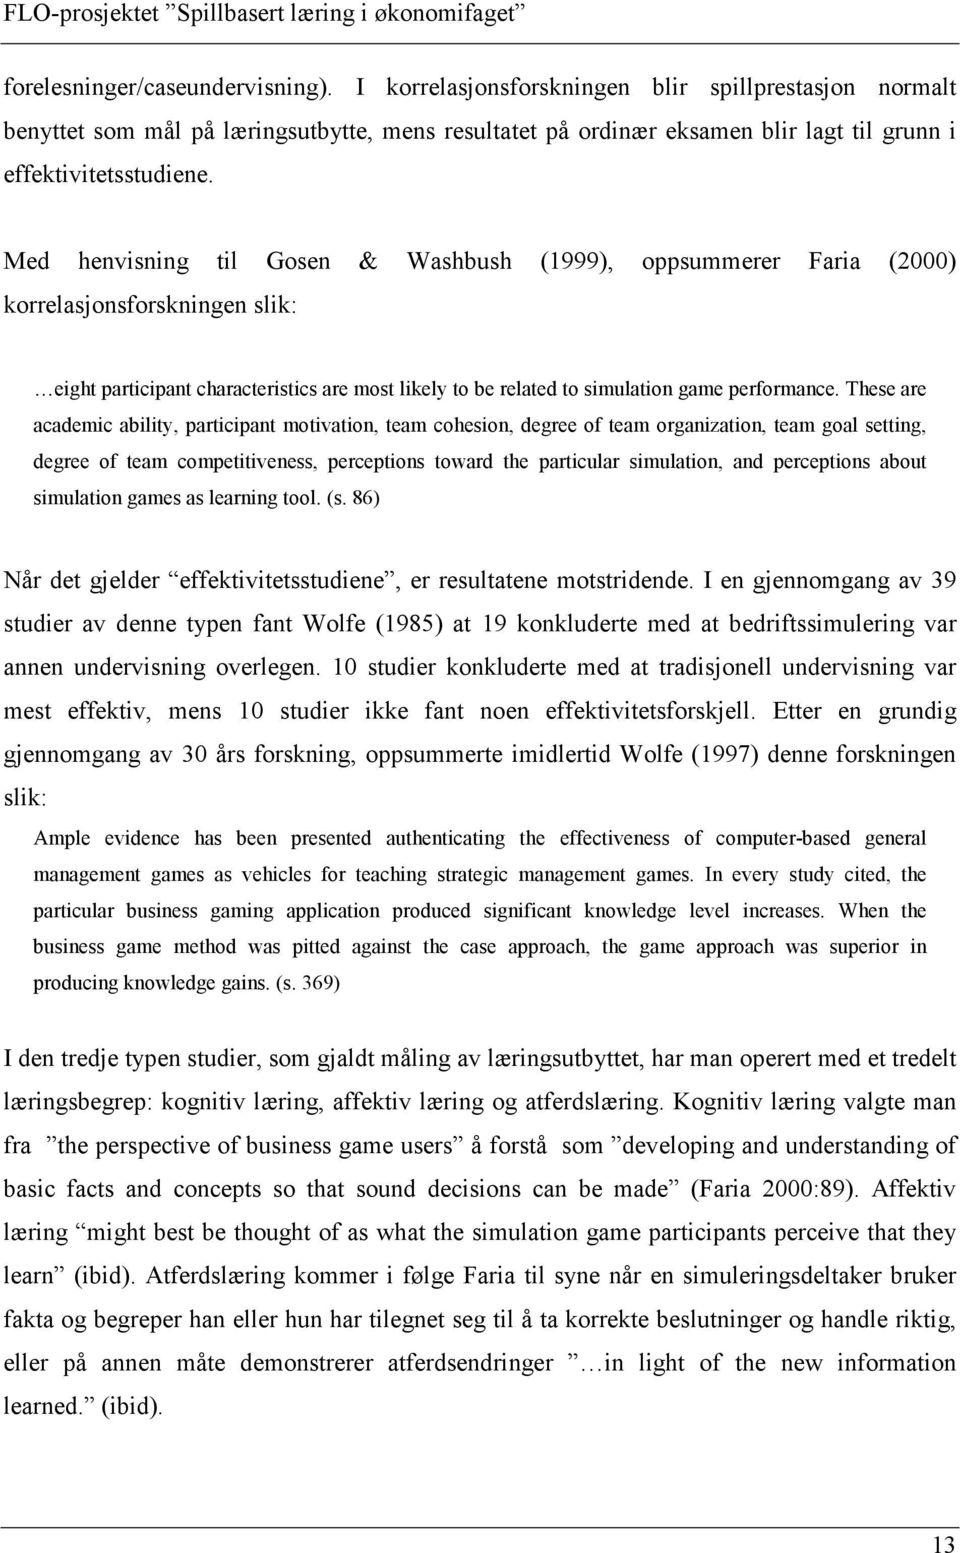 Med henvisning til Gosen & Washbush (1999), oppsummerer Faria (2000) korrelasjonsforskningen slik: eight participant characteristics are most likely to be related to simulation game performance.